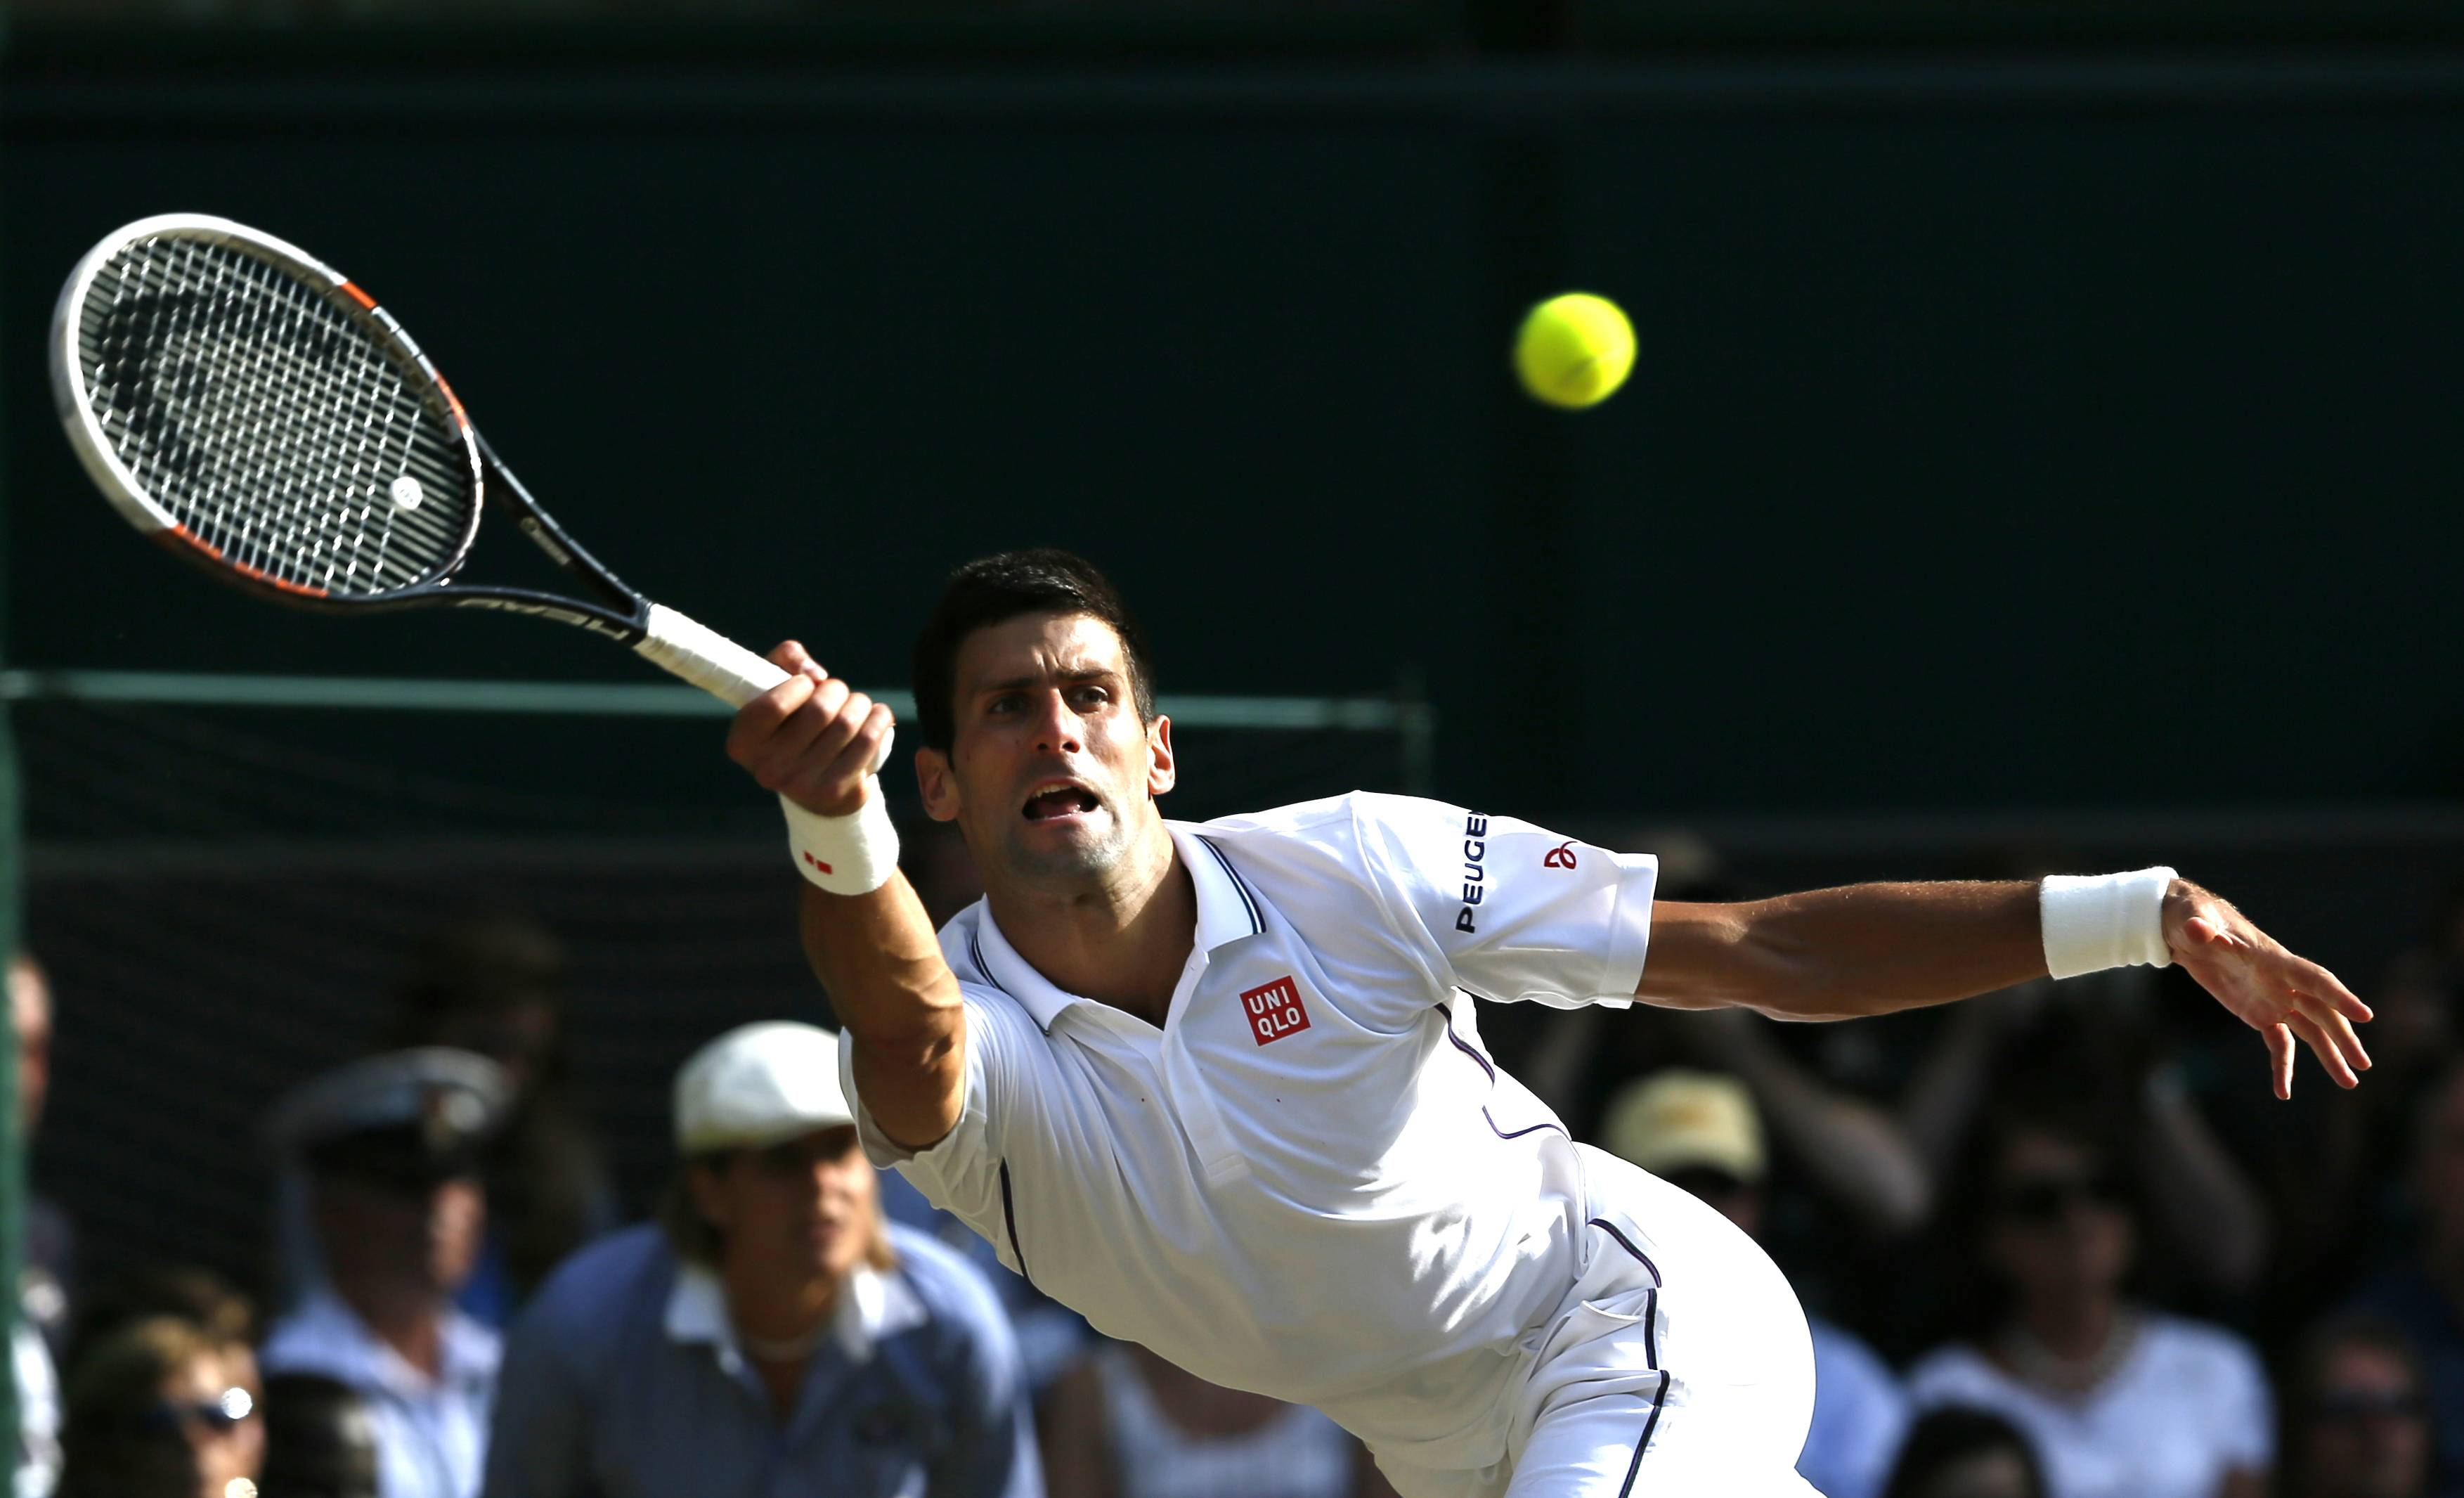 Novak Djokovic of Serbia plays a return to Roger Federer of Switzerland during their men's singles final at the All England Lawn Tennis Championships in Wimbledon, London, Sunday, July 6, 2014.